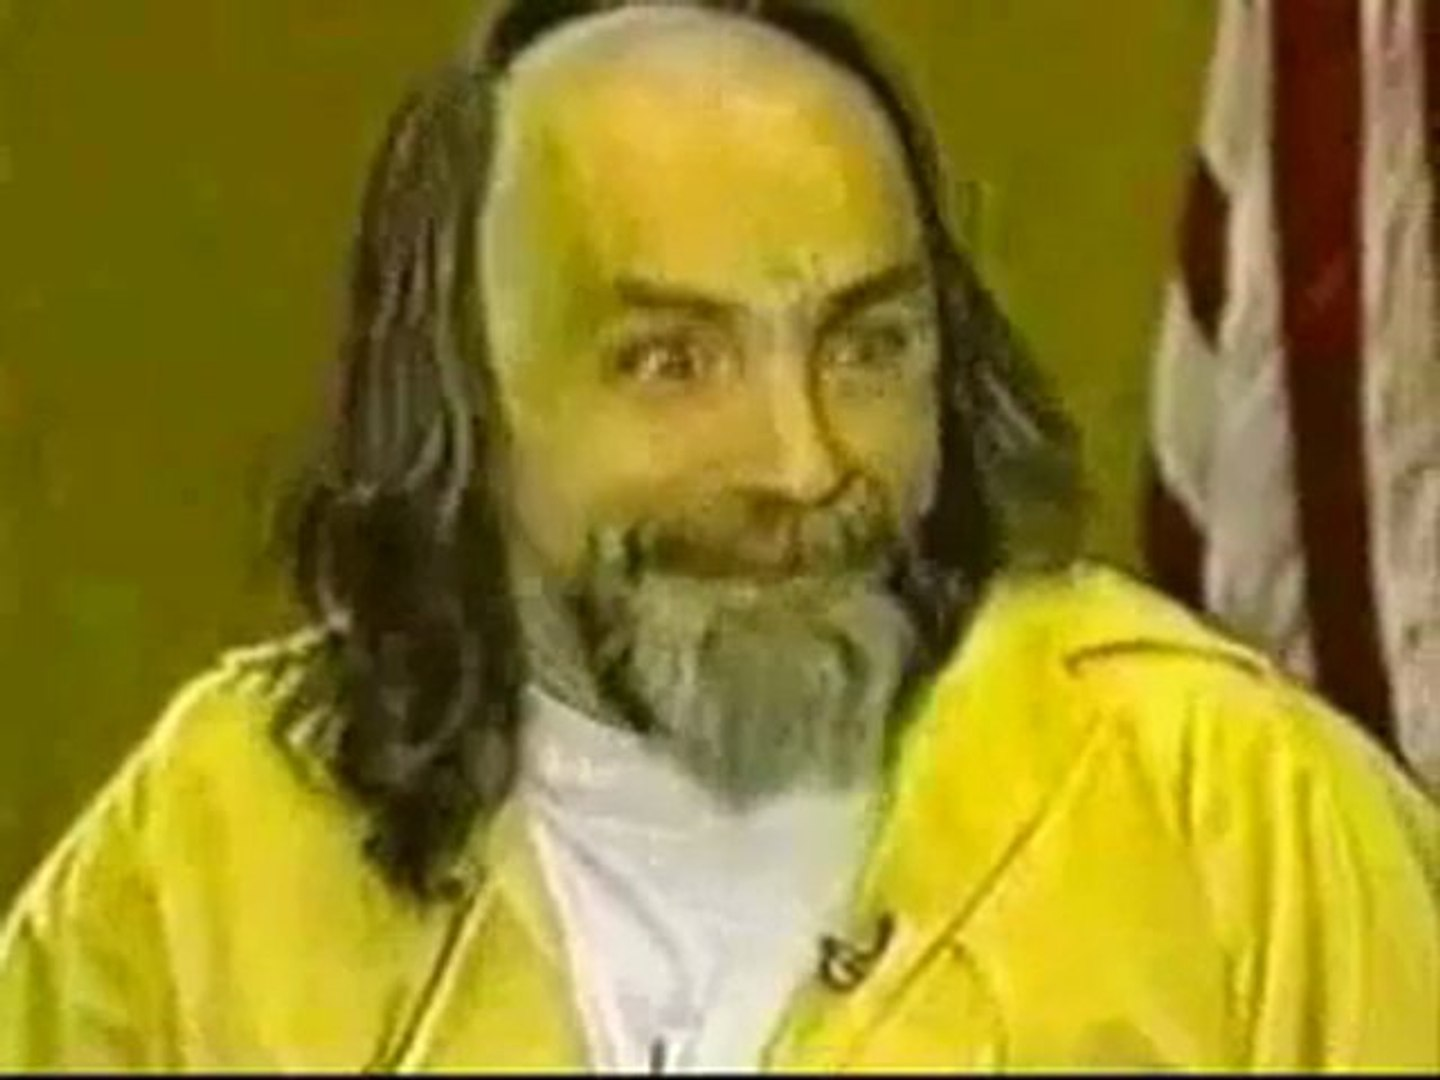 Peter Psycho Ehlers starring in Charles Manson Goes Insane.